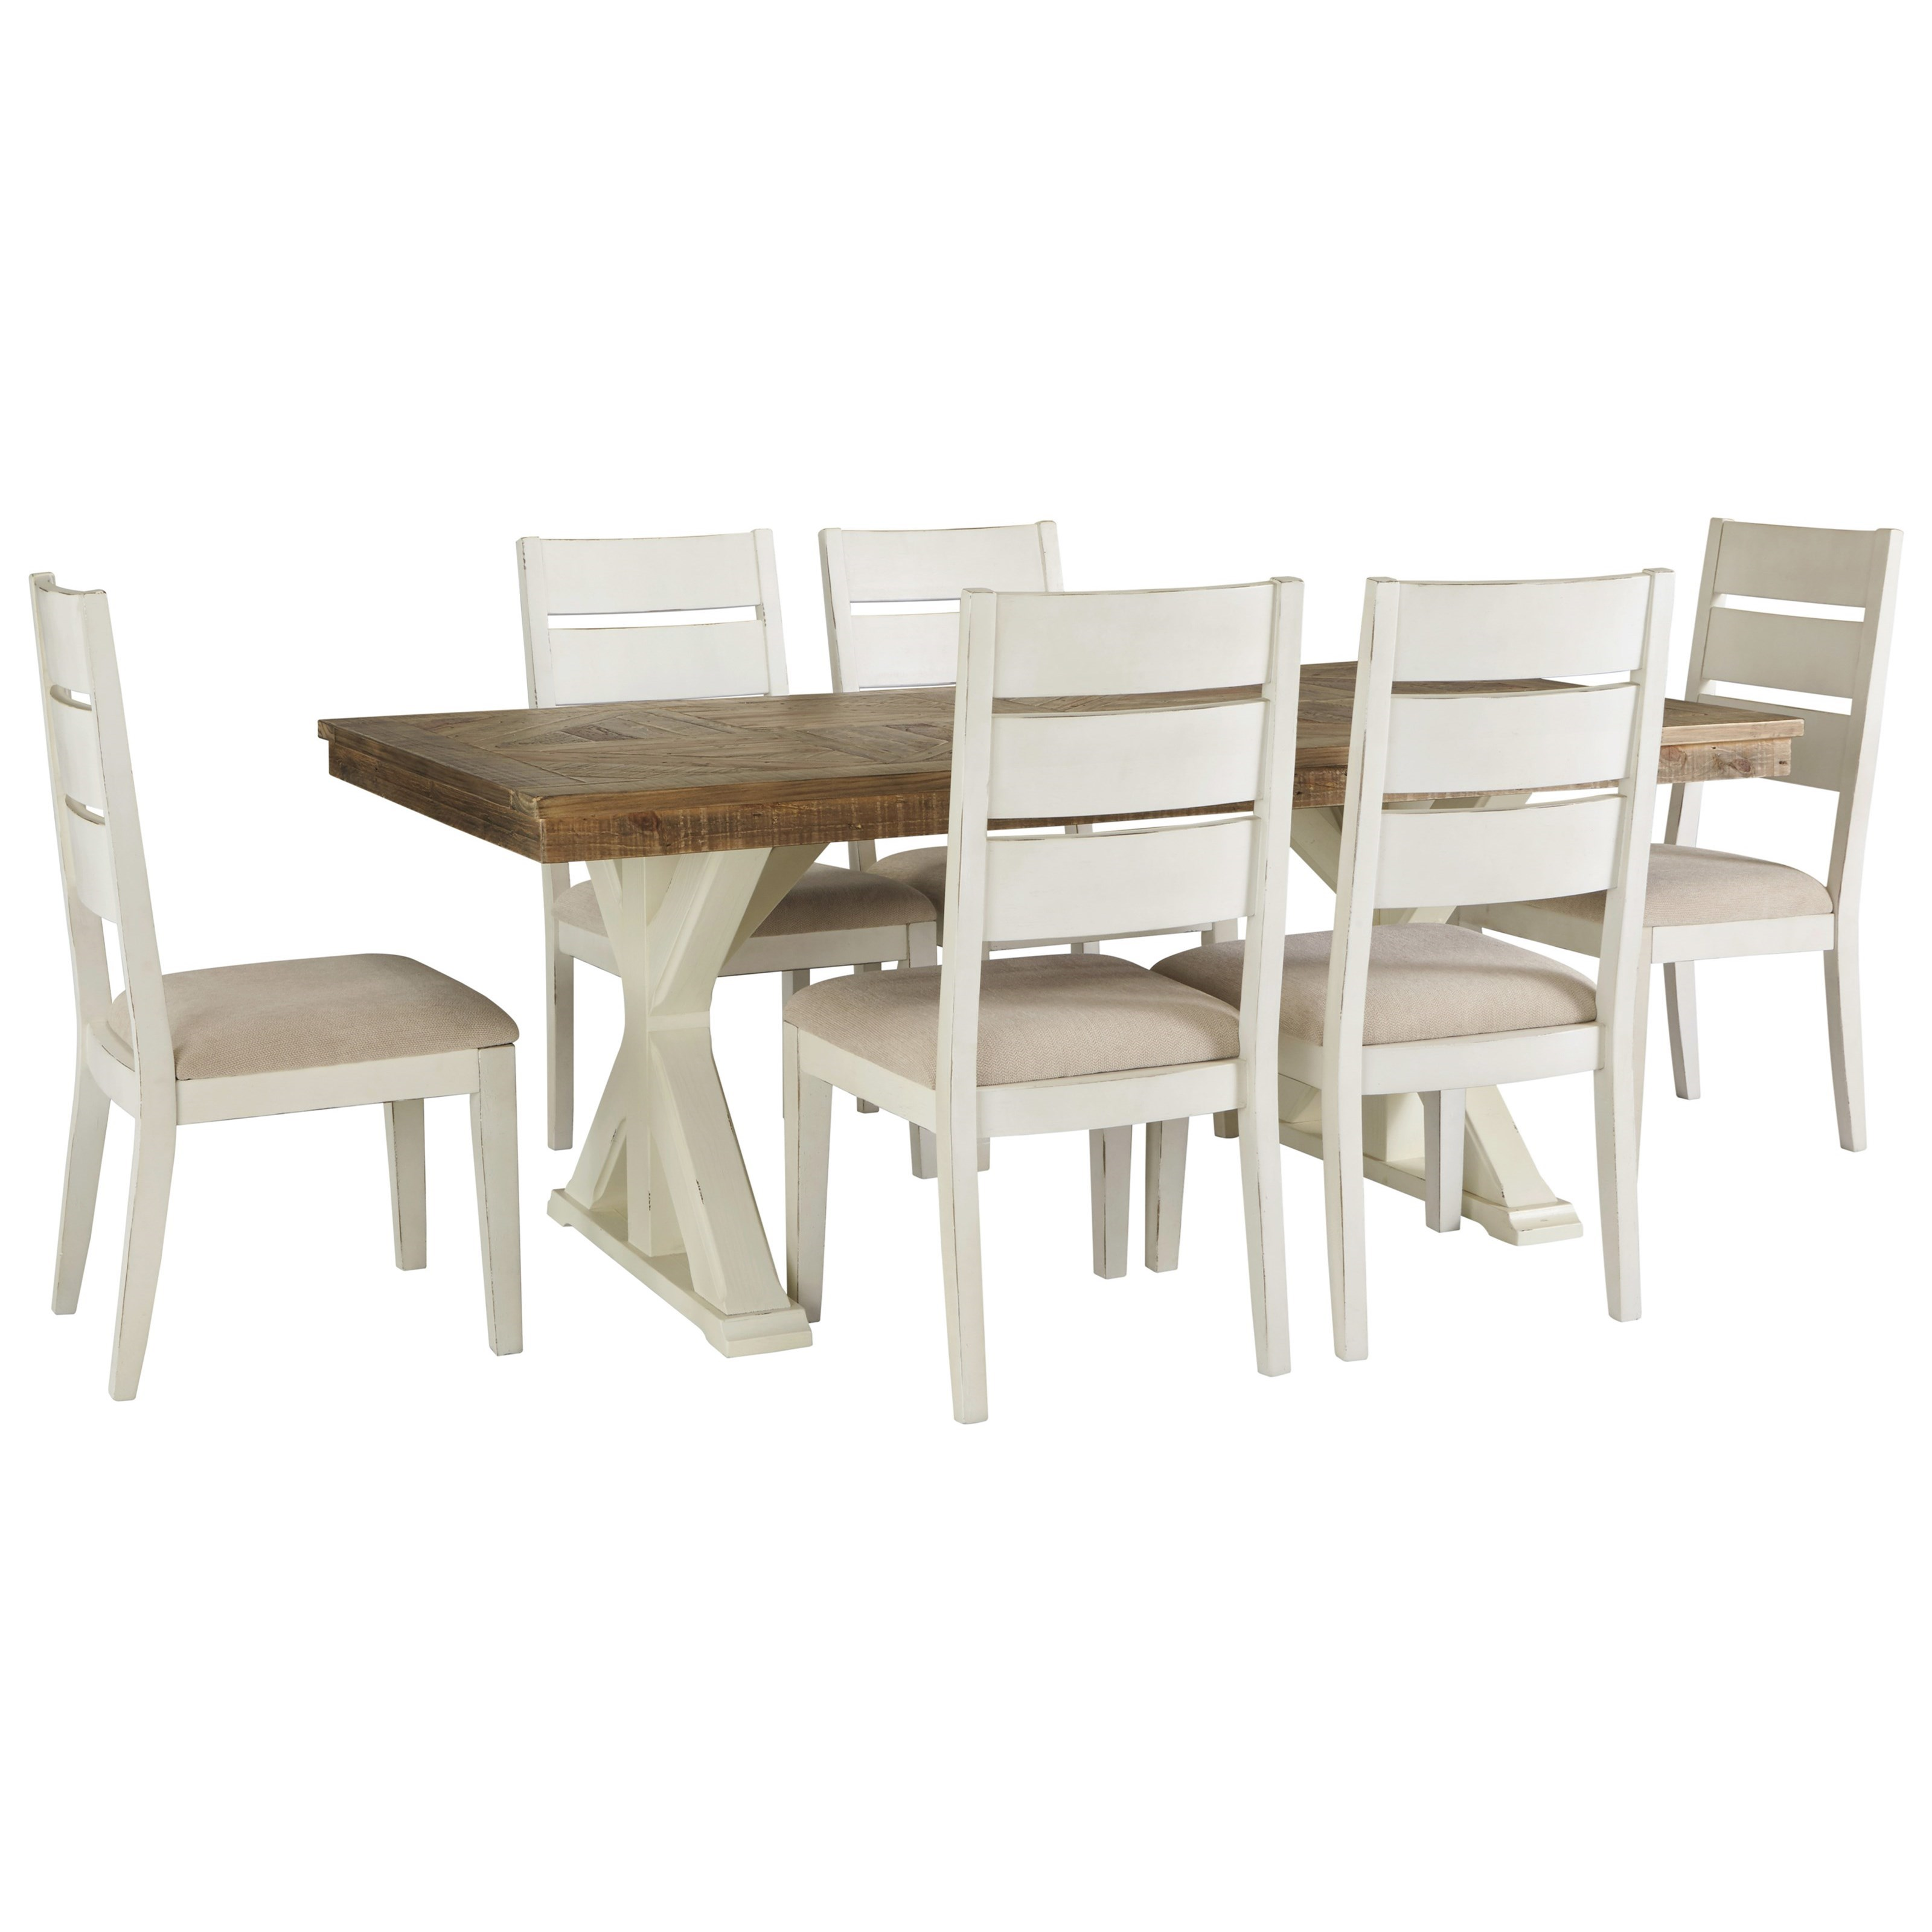 Grindleburg 7 Piece Rectangular Table and Chair Set by Signature Design at Fisher Home Furnishings